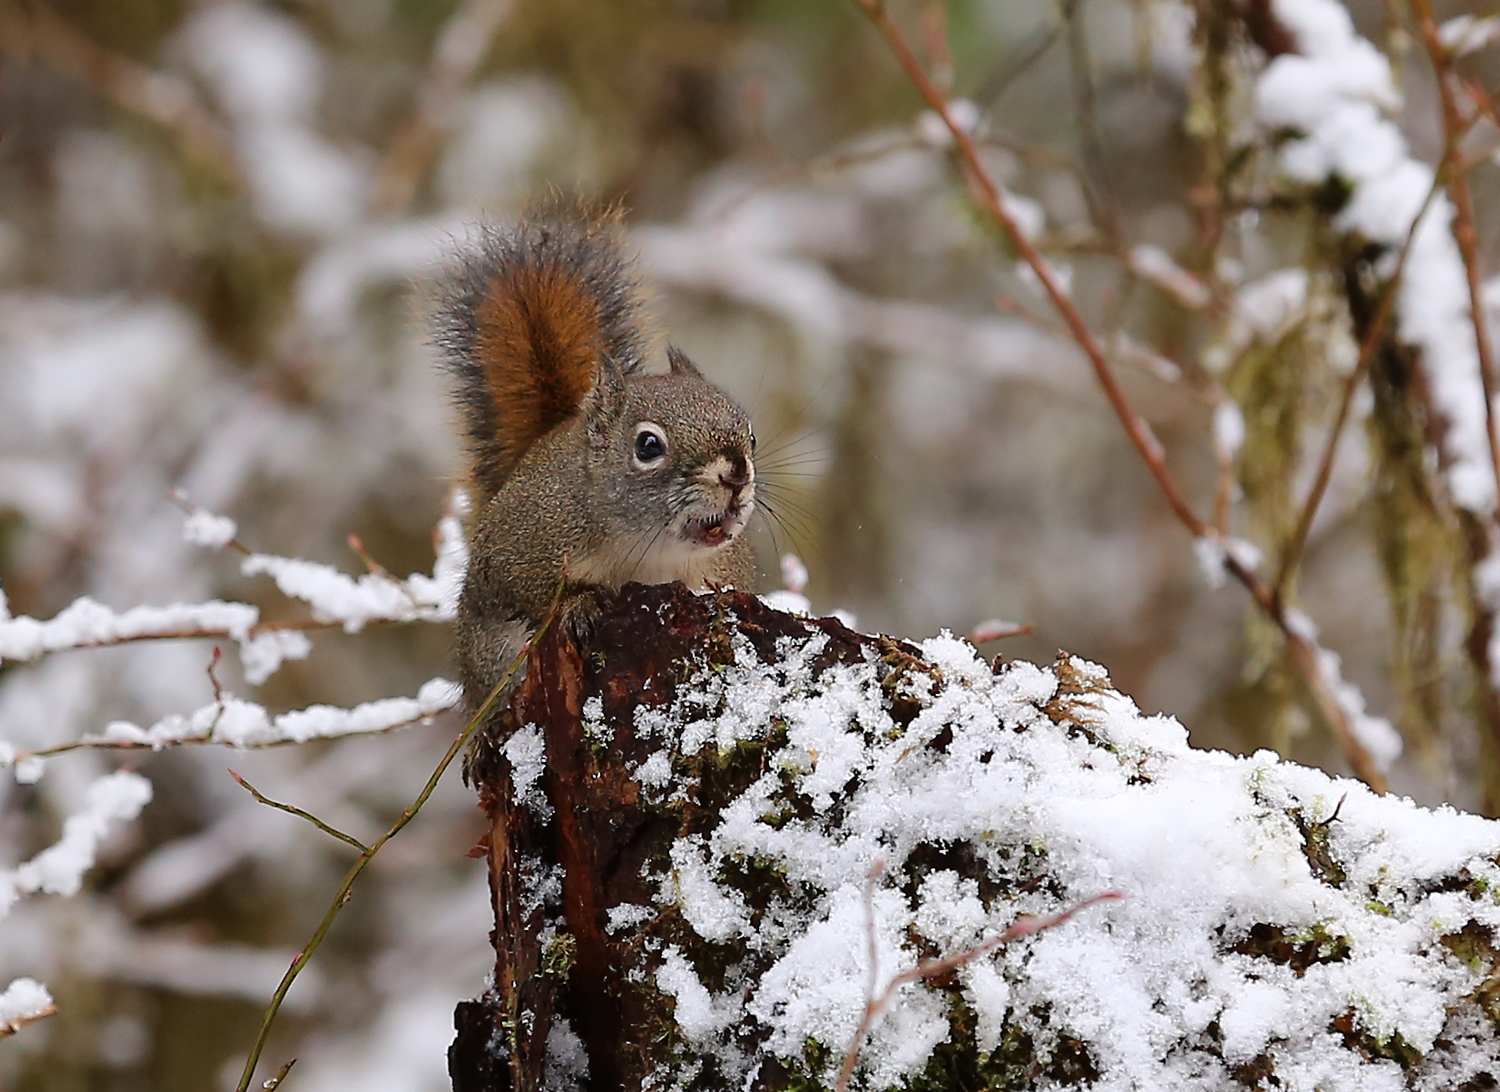 Chattering Red Squirrel — Alaska Floats My Boat